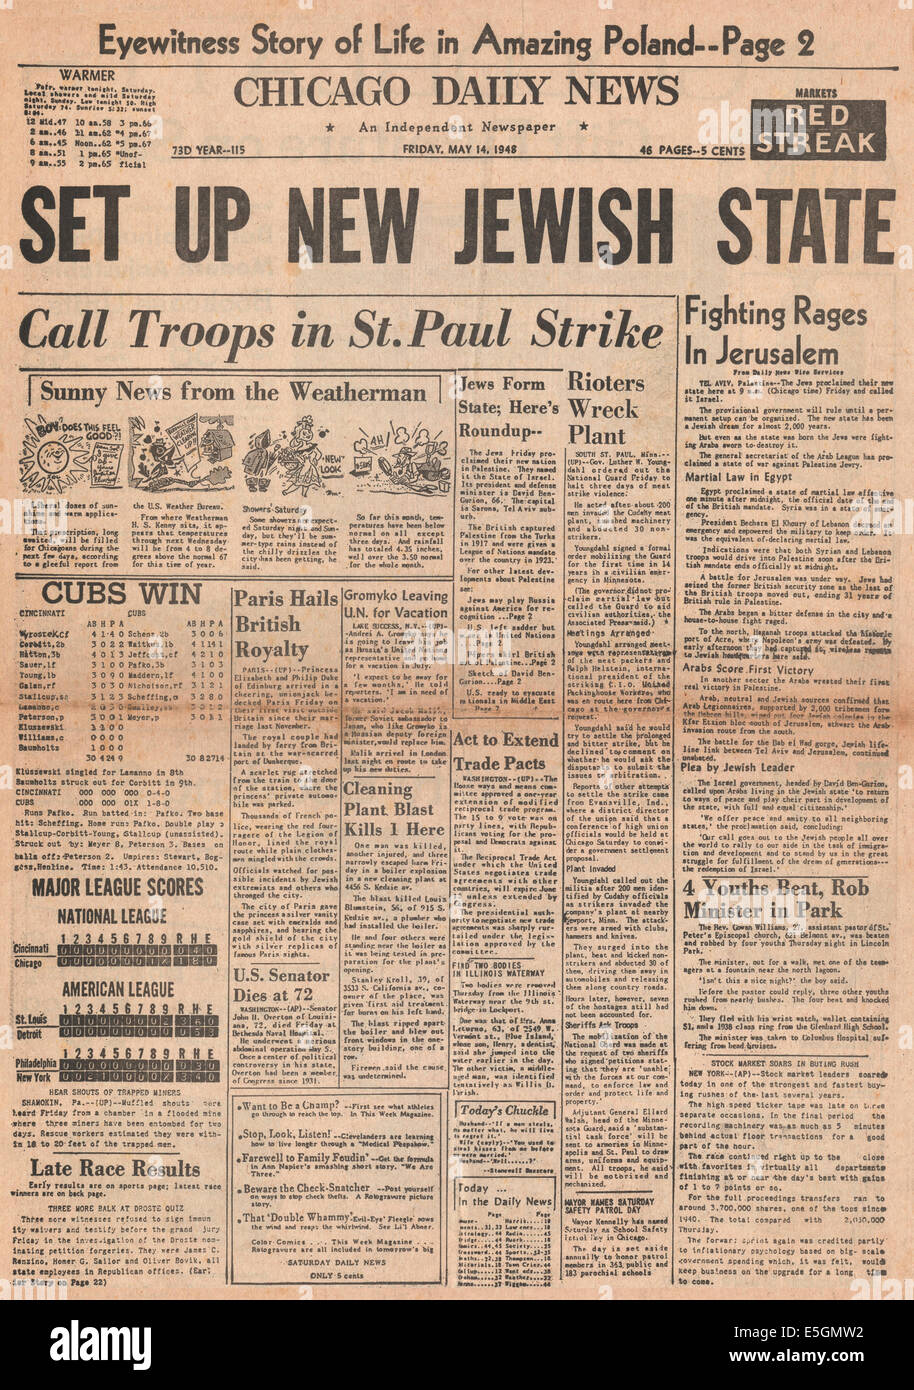 1948 Chicago Daily News front page reporting State of Israel